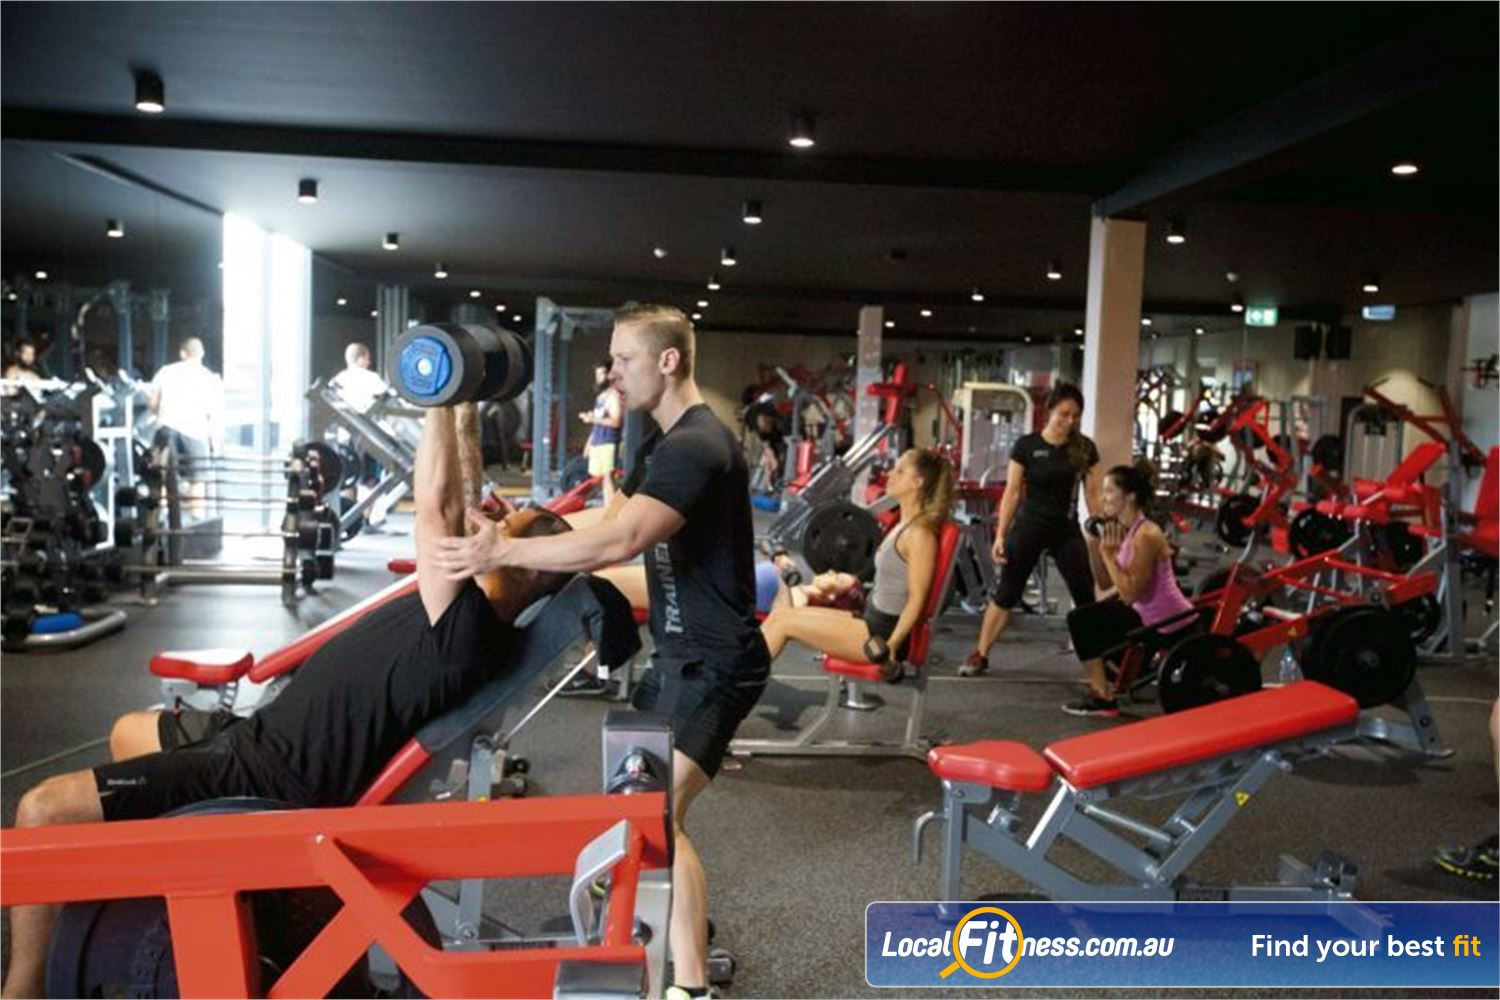 Goodlife Health Clubs Rothwell Our Rothwell gym team are ready to help you with you strength goals.